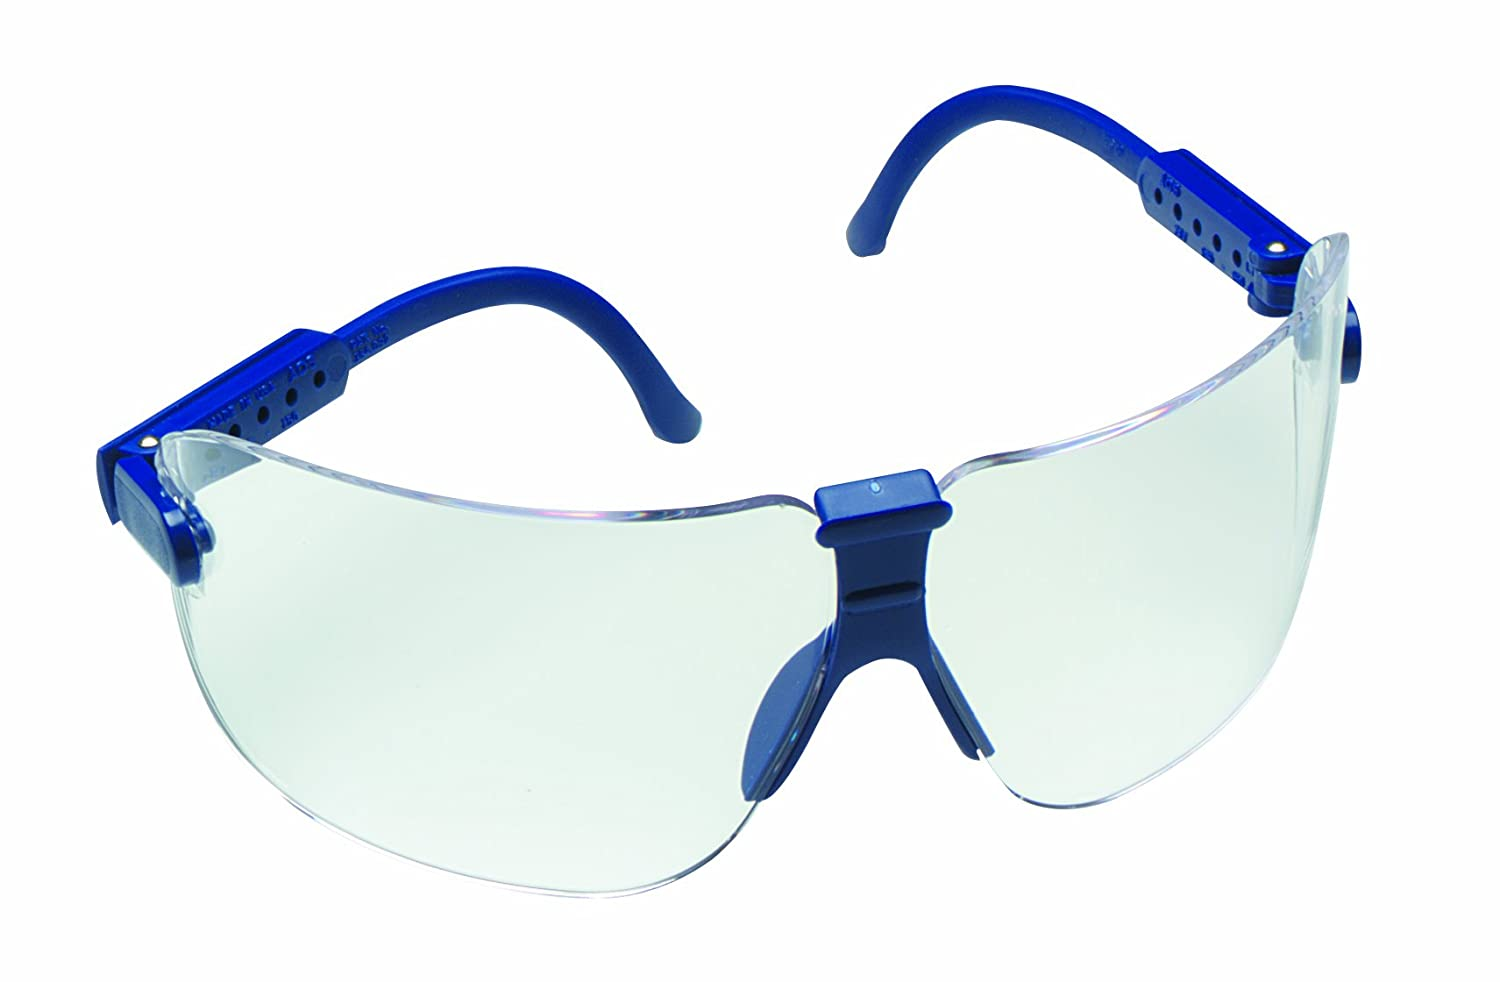 Safety Glasses, Clear, Scratch-Resistant by Jackson Safety B007IB39F2